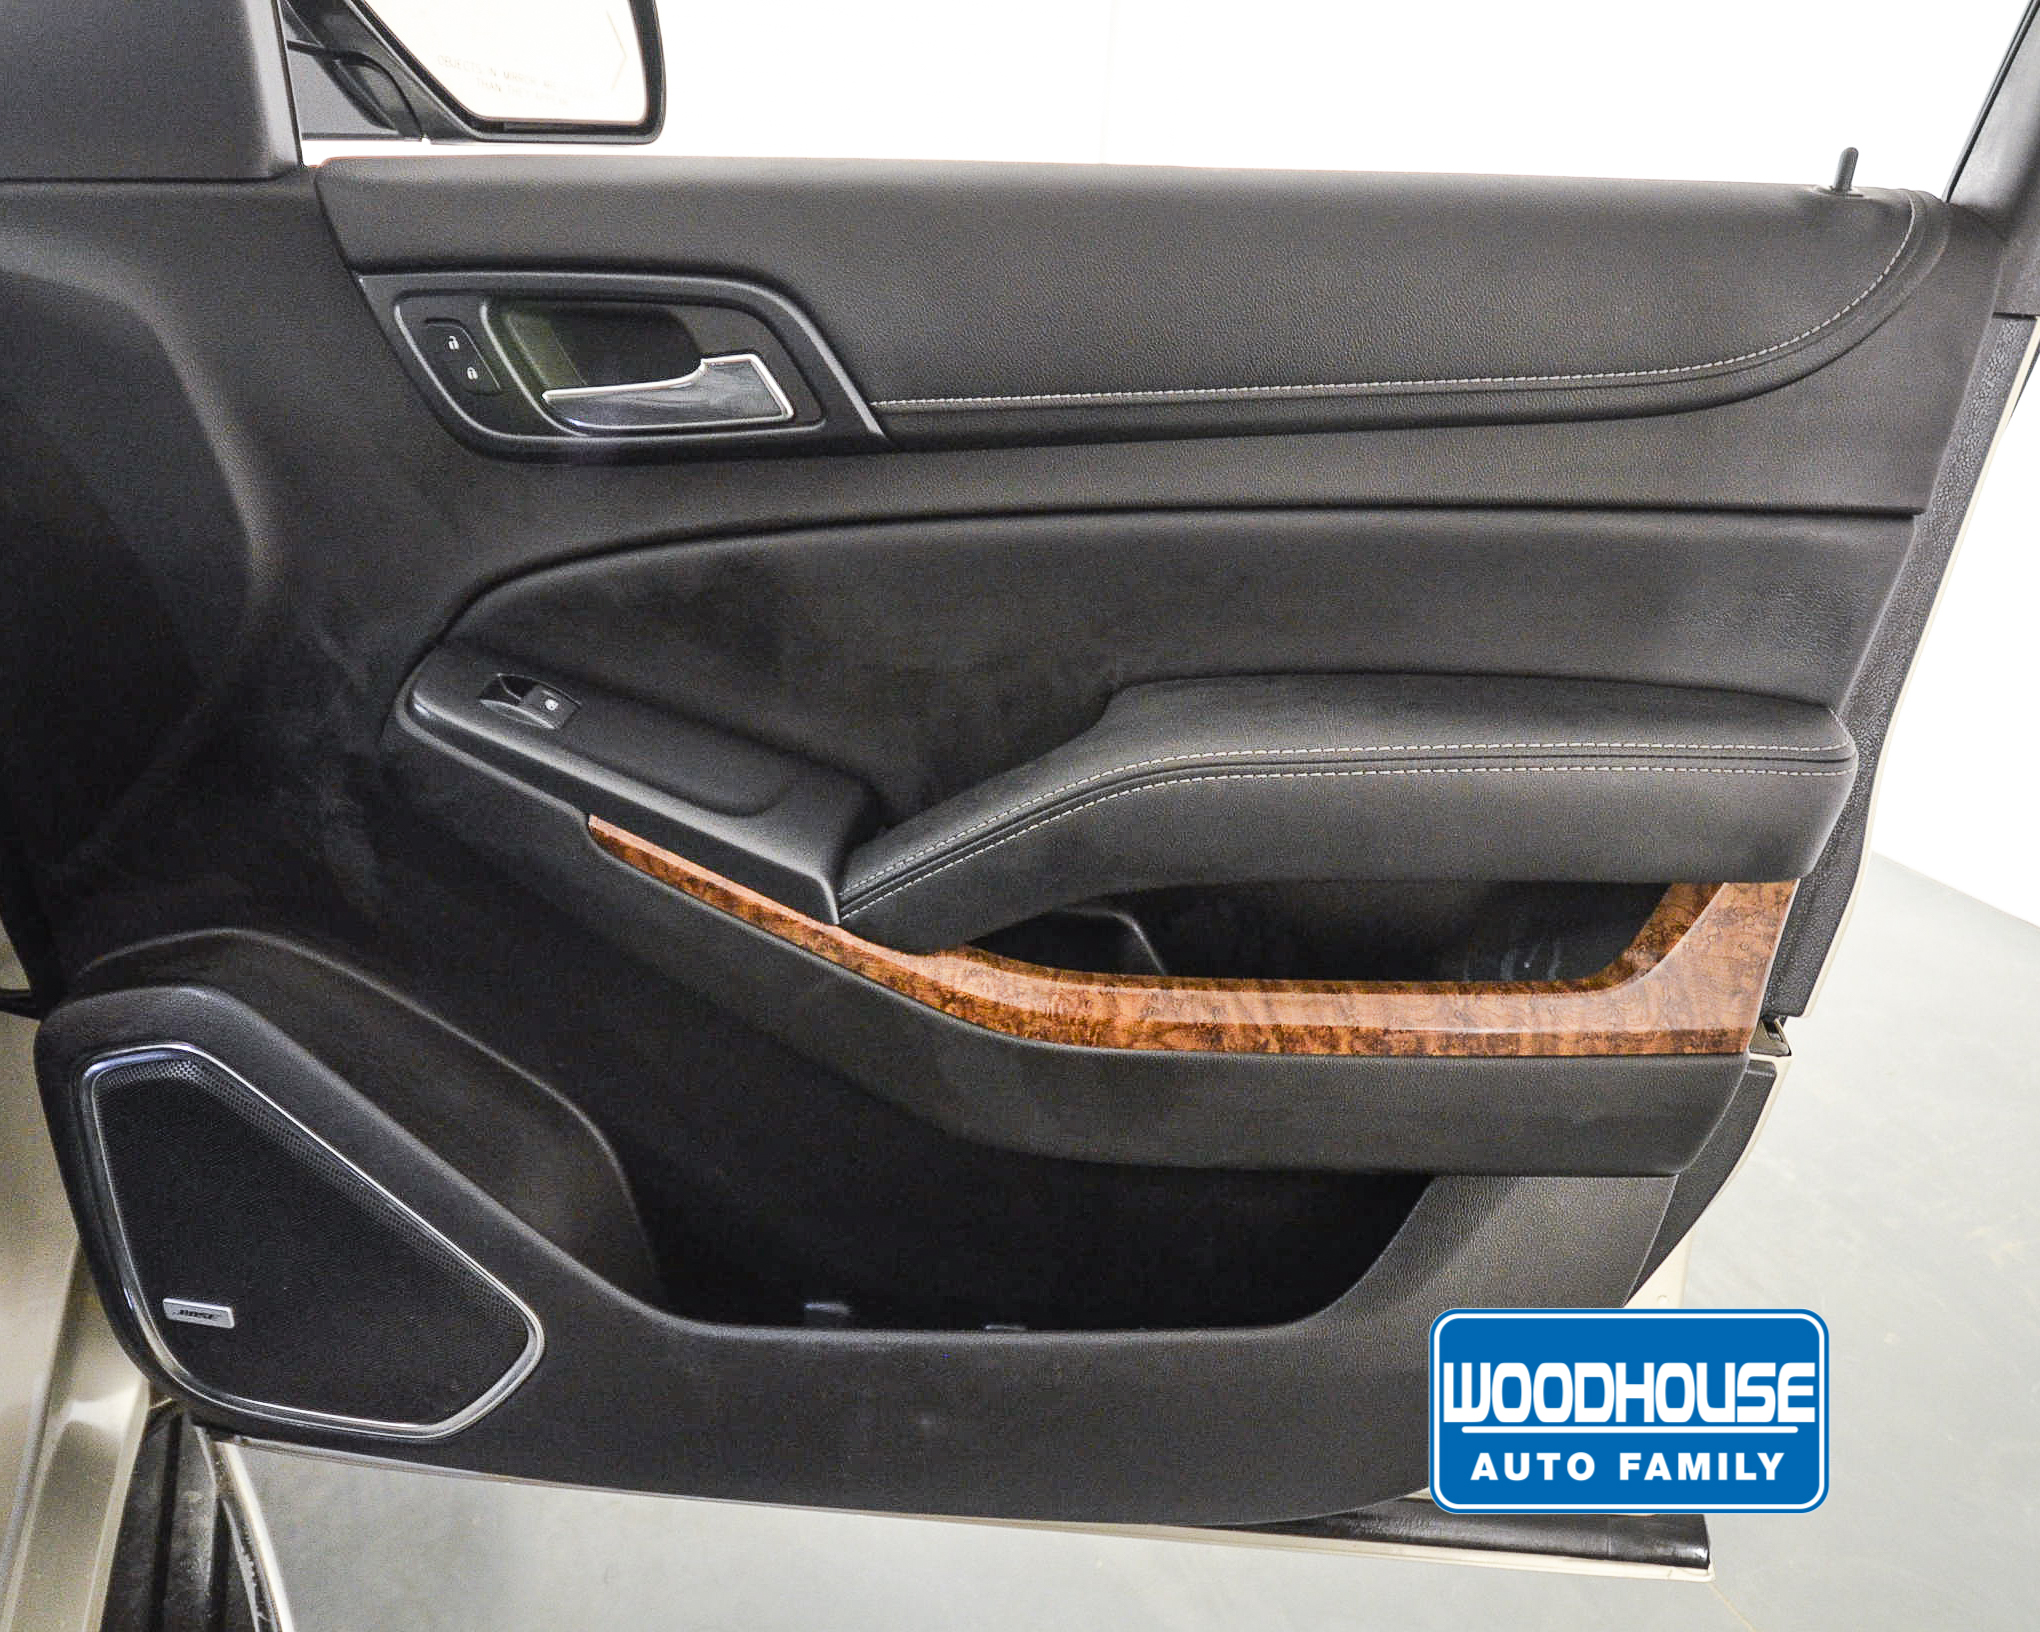 Woodhouse Hyundai Omaha >> Woodhouse | Used 2015 Chevrolet Tahoe For Sale | Chevy Buick (Missouri